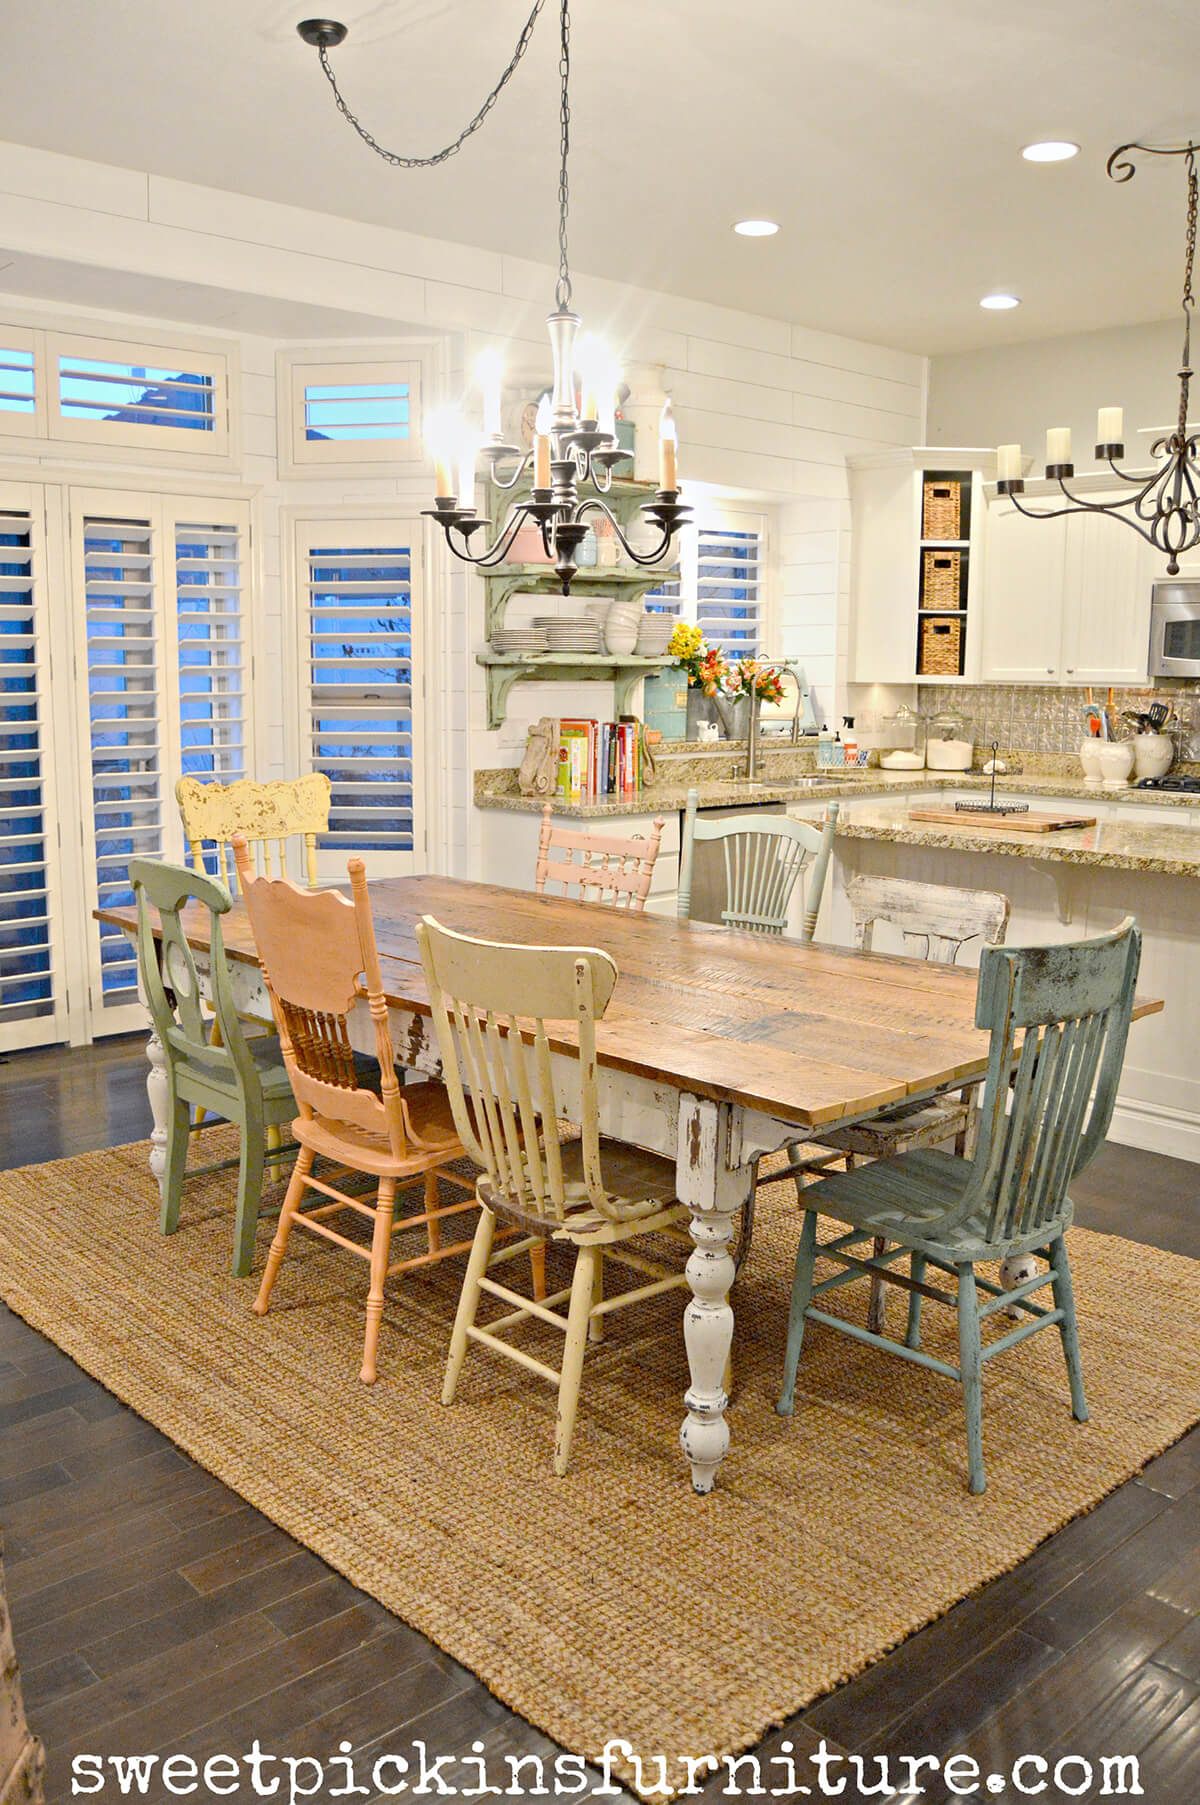 37 Best Farmhouse Dining Room Design and Decor Ideas for 2017 : 09 farmhouse dining room design decor ideas homebnc from homebnc.com size 1200 x 1805 jpeg 358kB